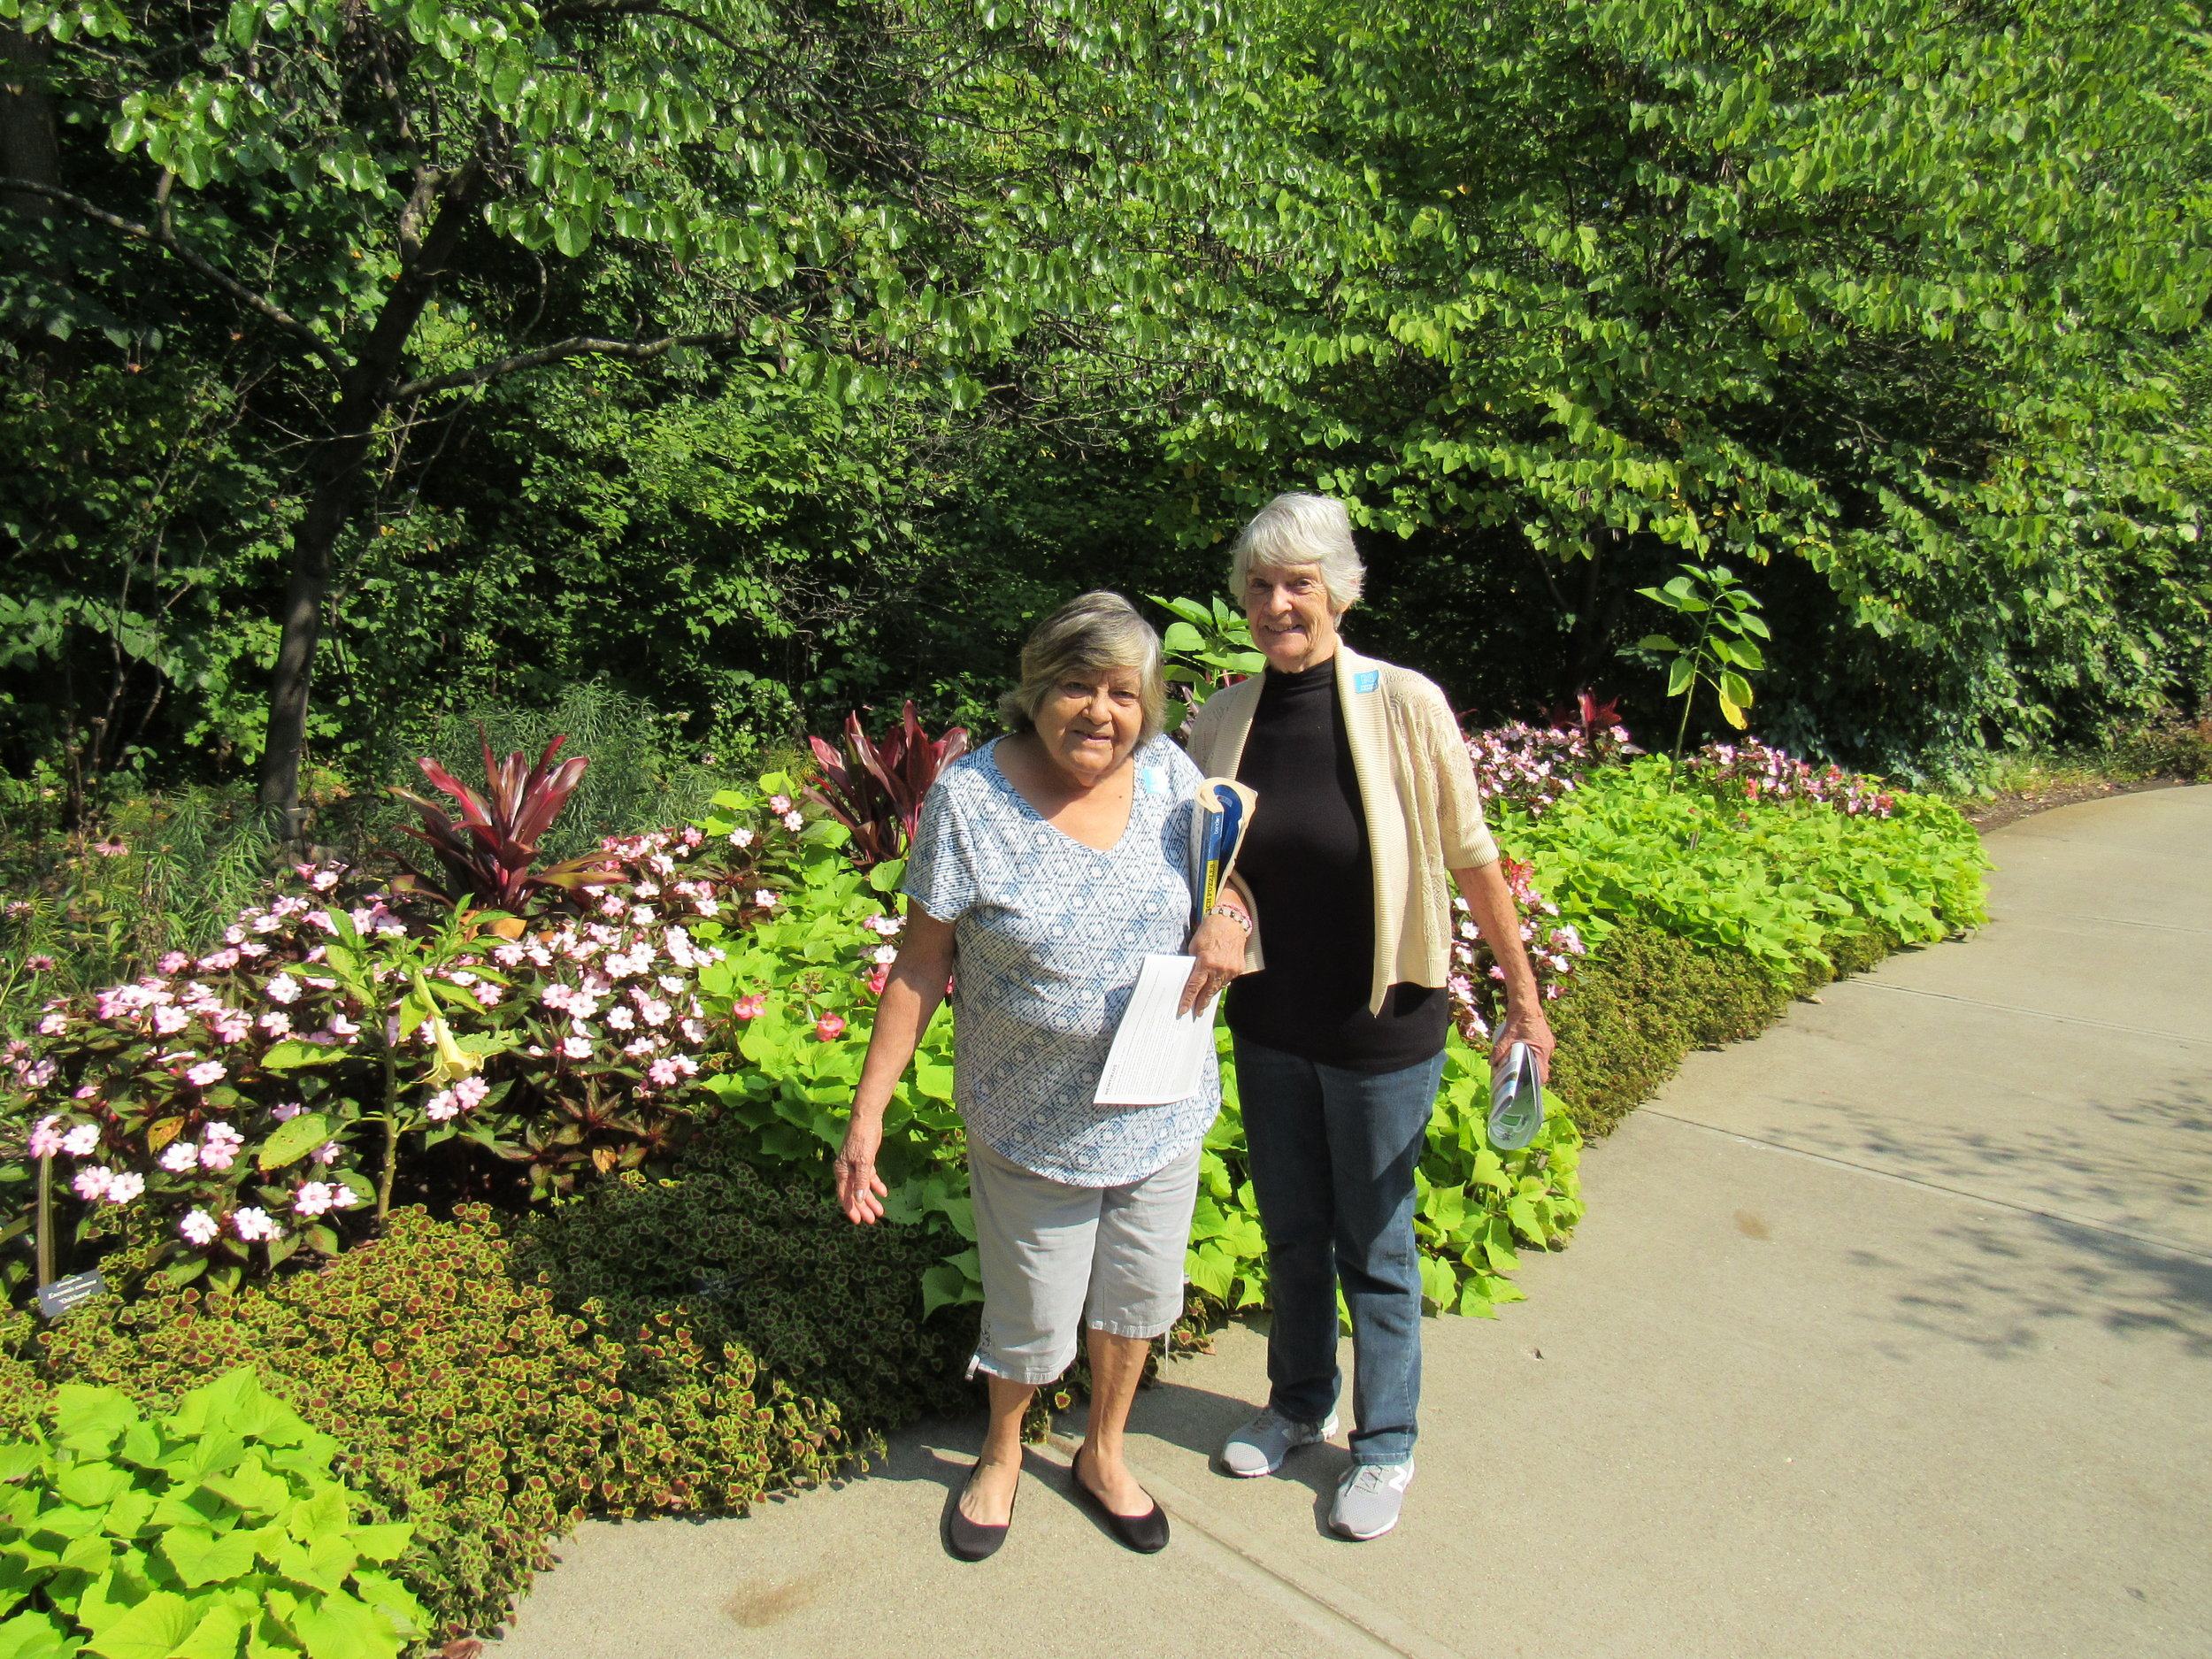 A relaxing walk in the botanical gardens at Newfields.